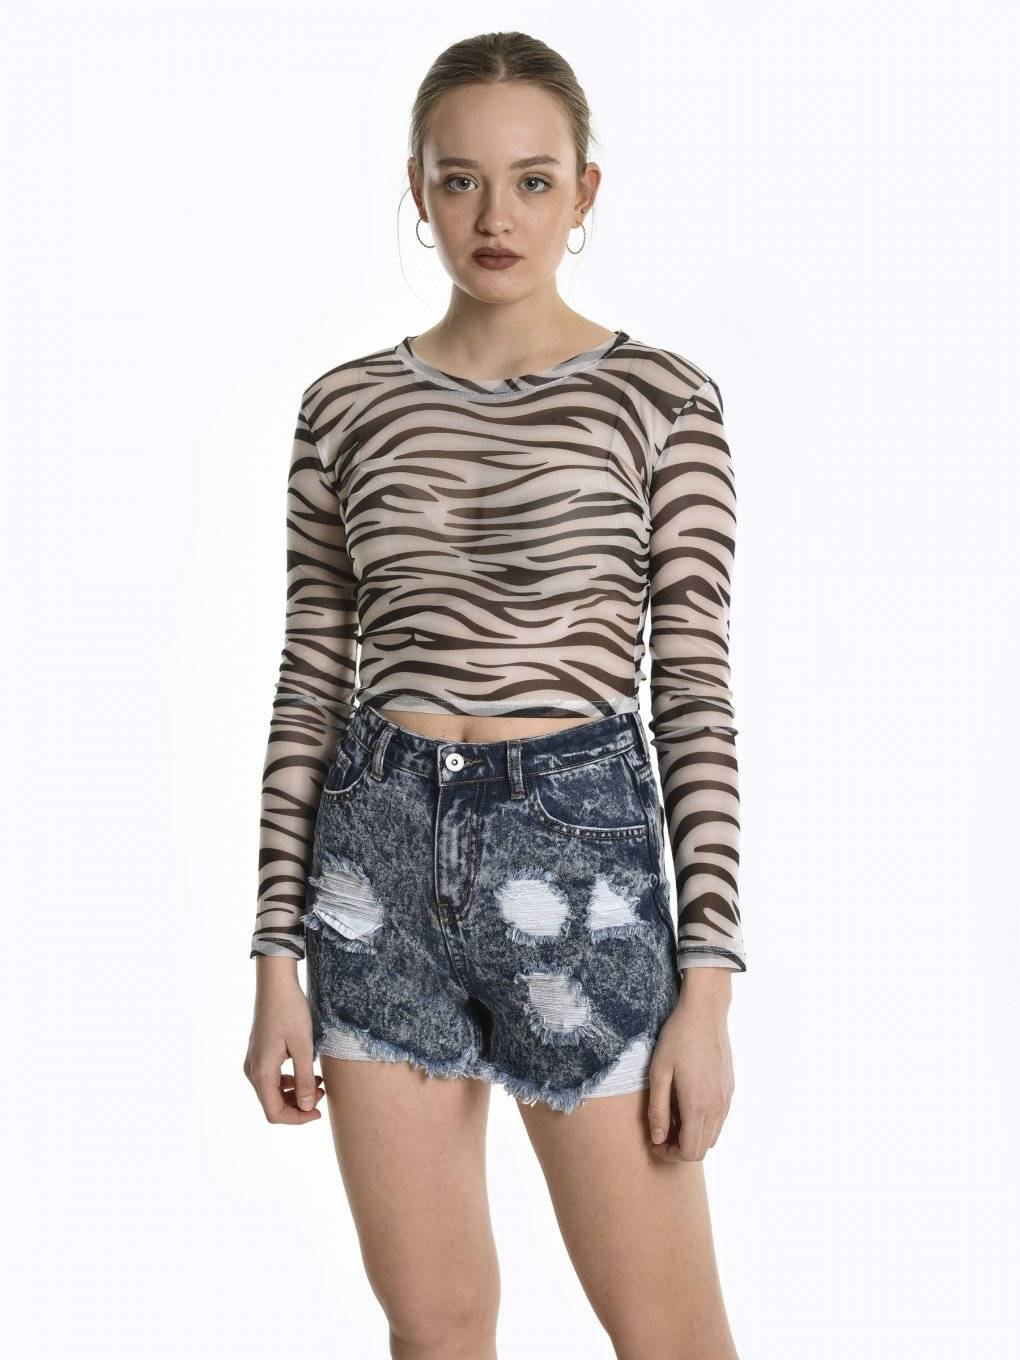 Animal print mesh crop top